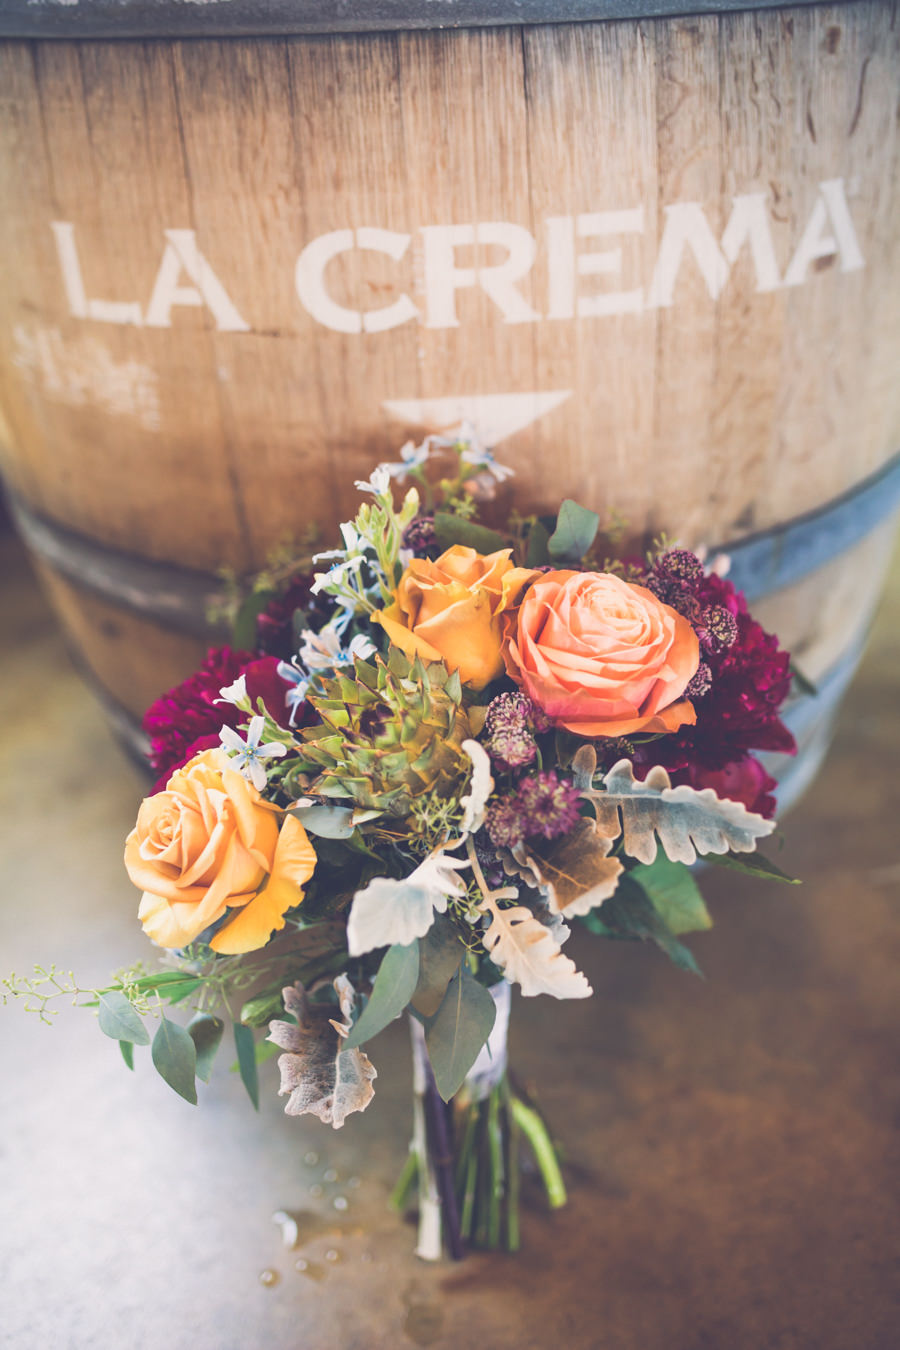 Bridal Bouquet with Gold, Peach, Bordeaux roses and Greenery | Fall Inspired Wedding Flowers